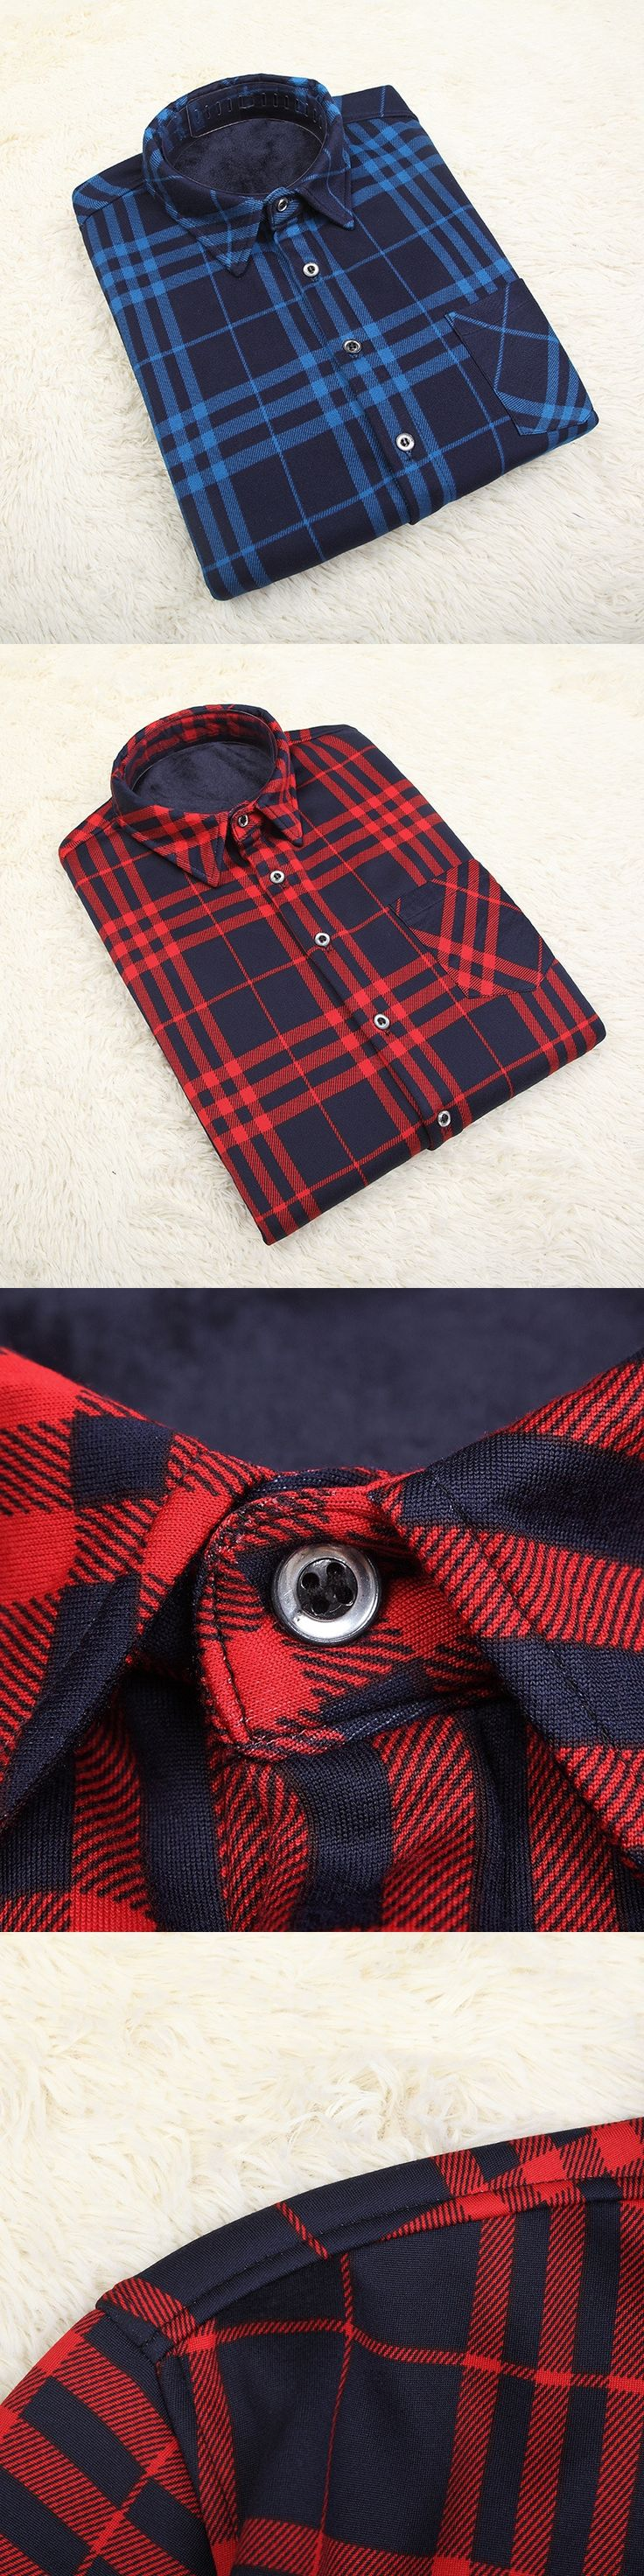 2016 Men Red Plaid Shirt Fashion Brand Regular Fit Casual Shirt Thicken velvet Cotton Long Sleeve Men Flannel Social Dress Shirt